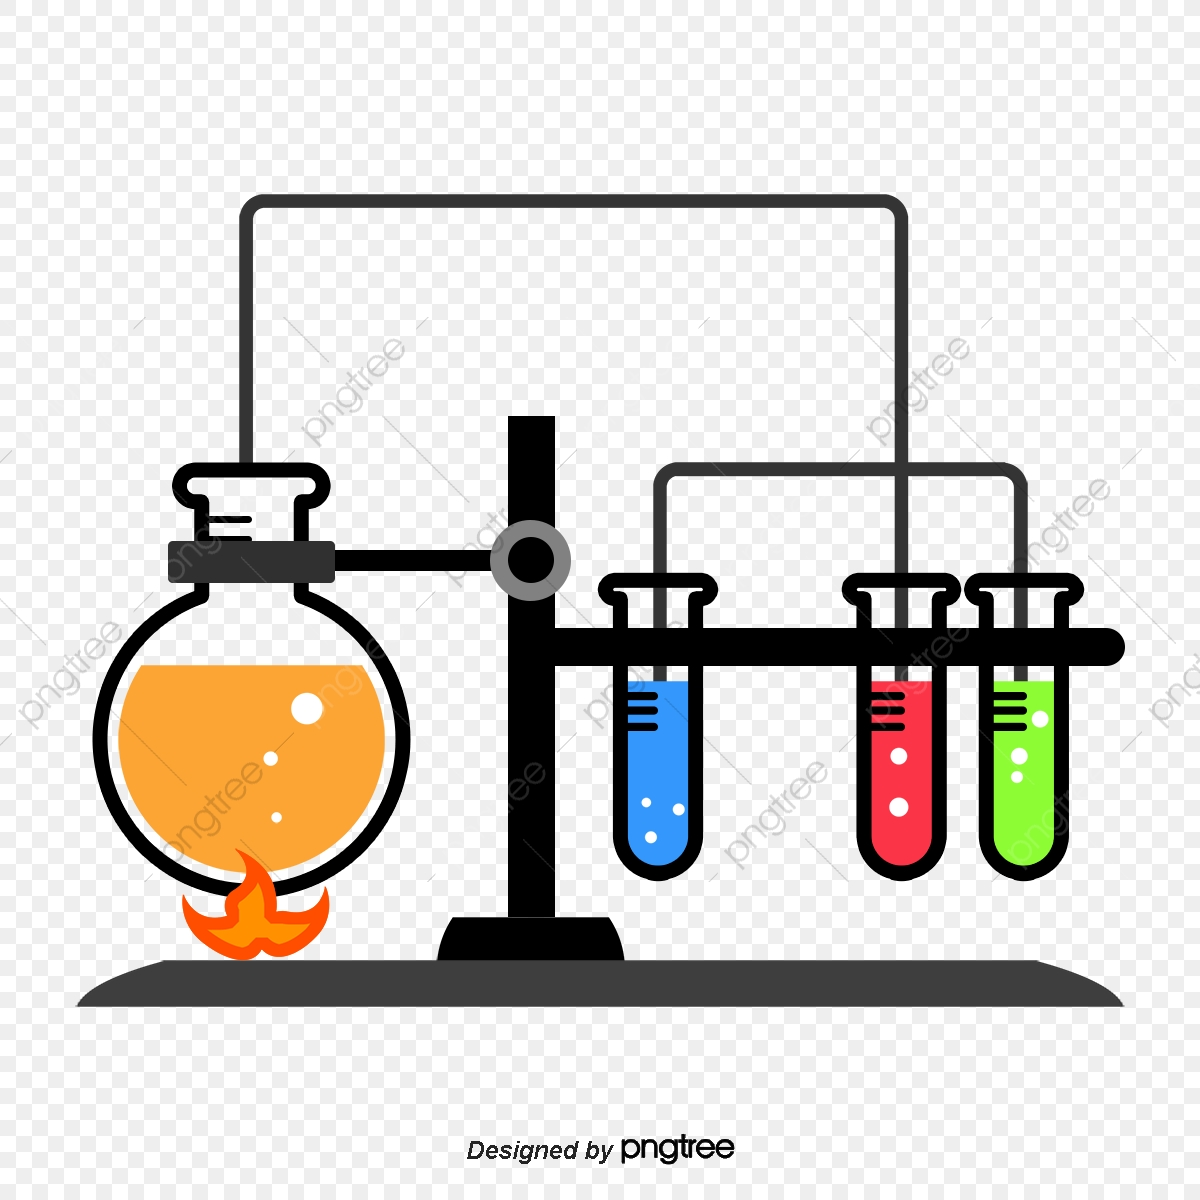 Experiment clipart laboratory apparatus, Experiment.